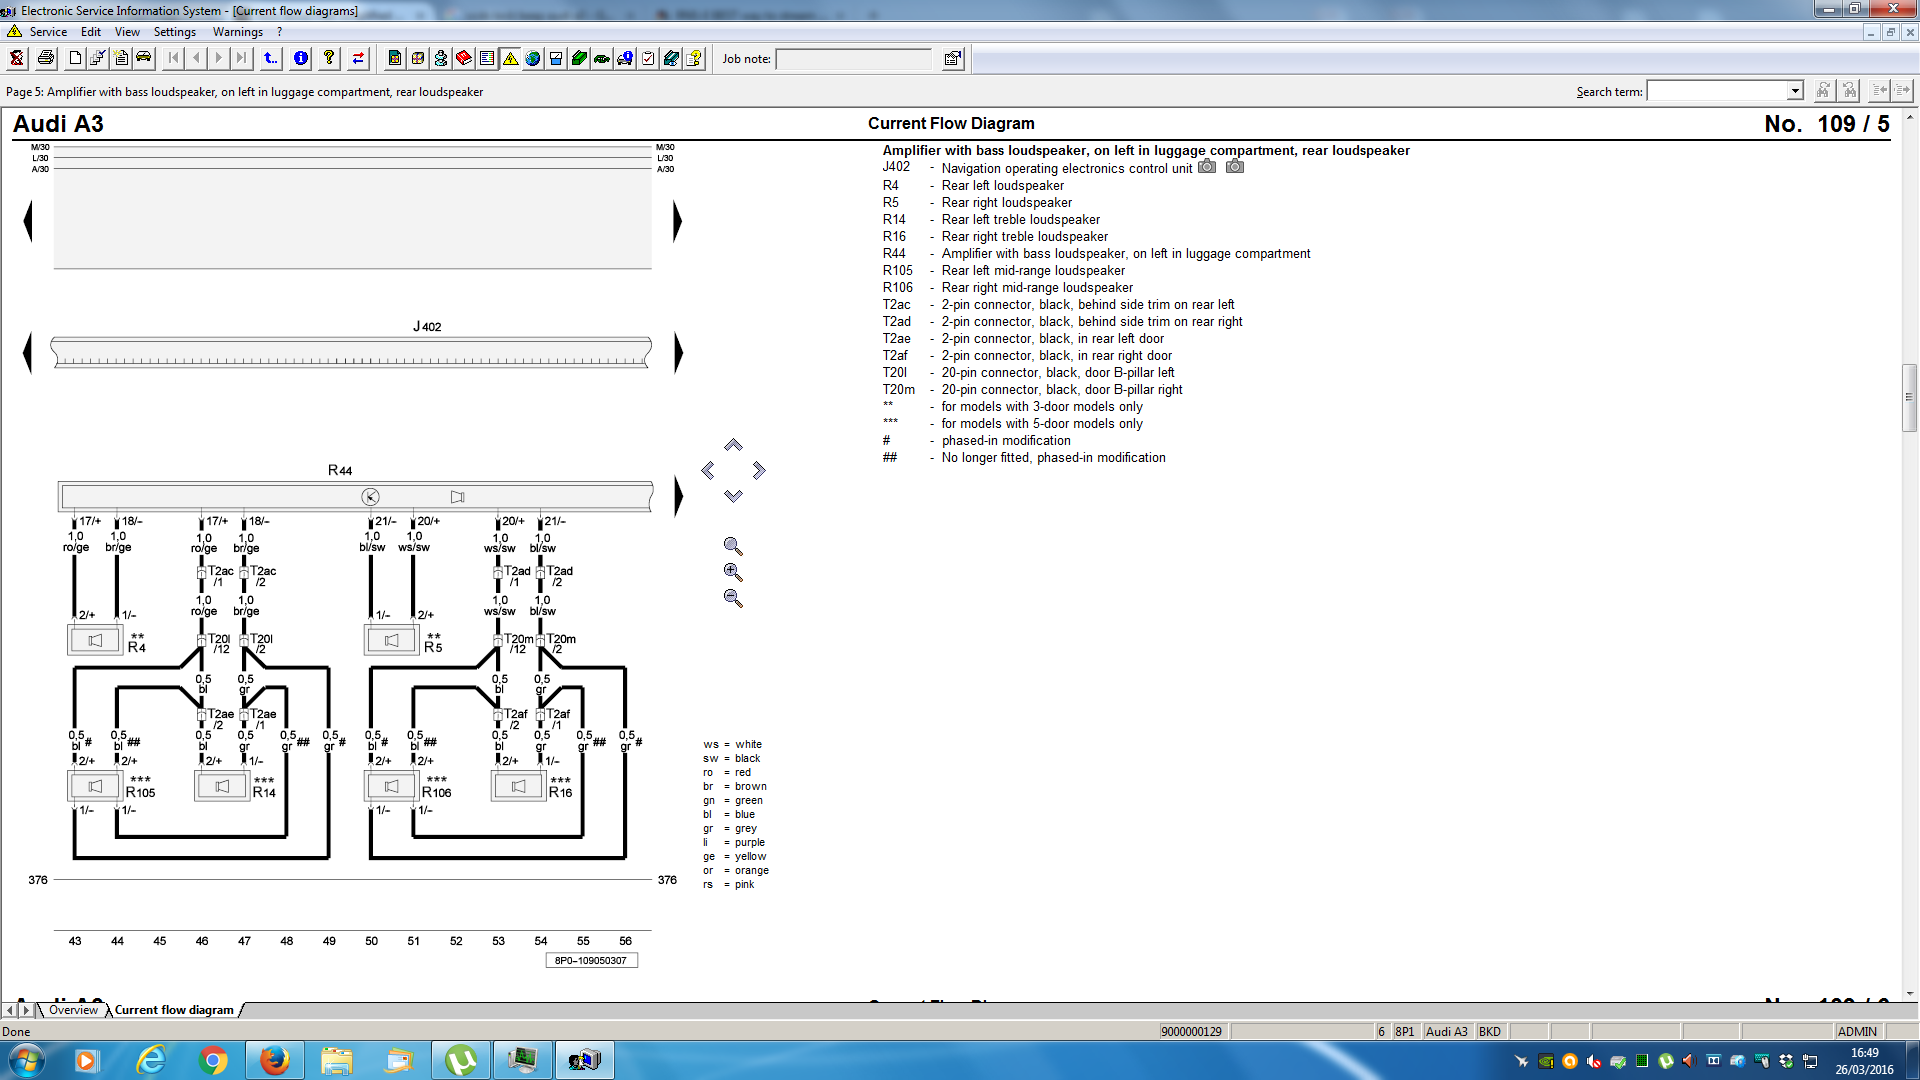 Audi A3 Wiring Diagram The Portal And Forum Of Subwoofer 32 2012 Radio